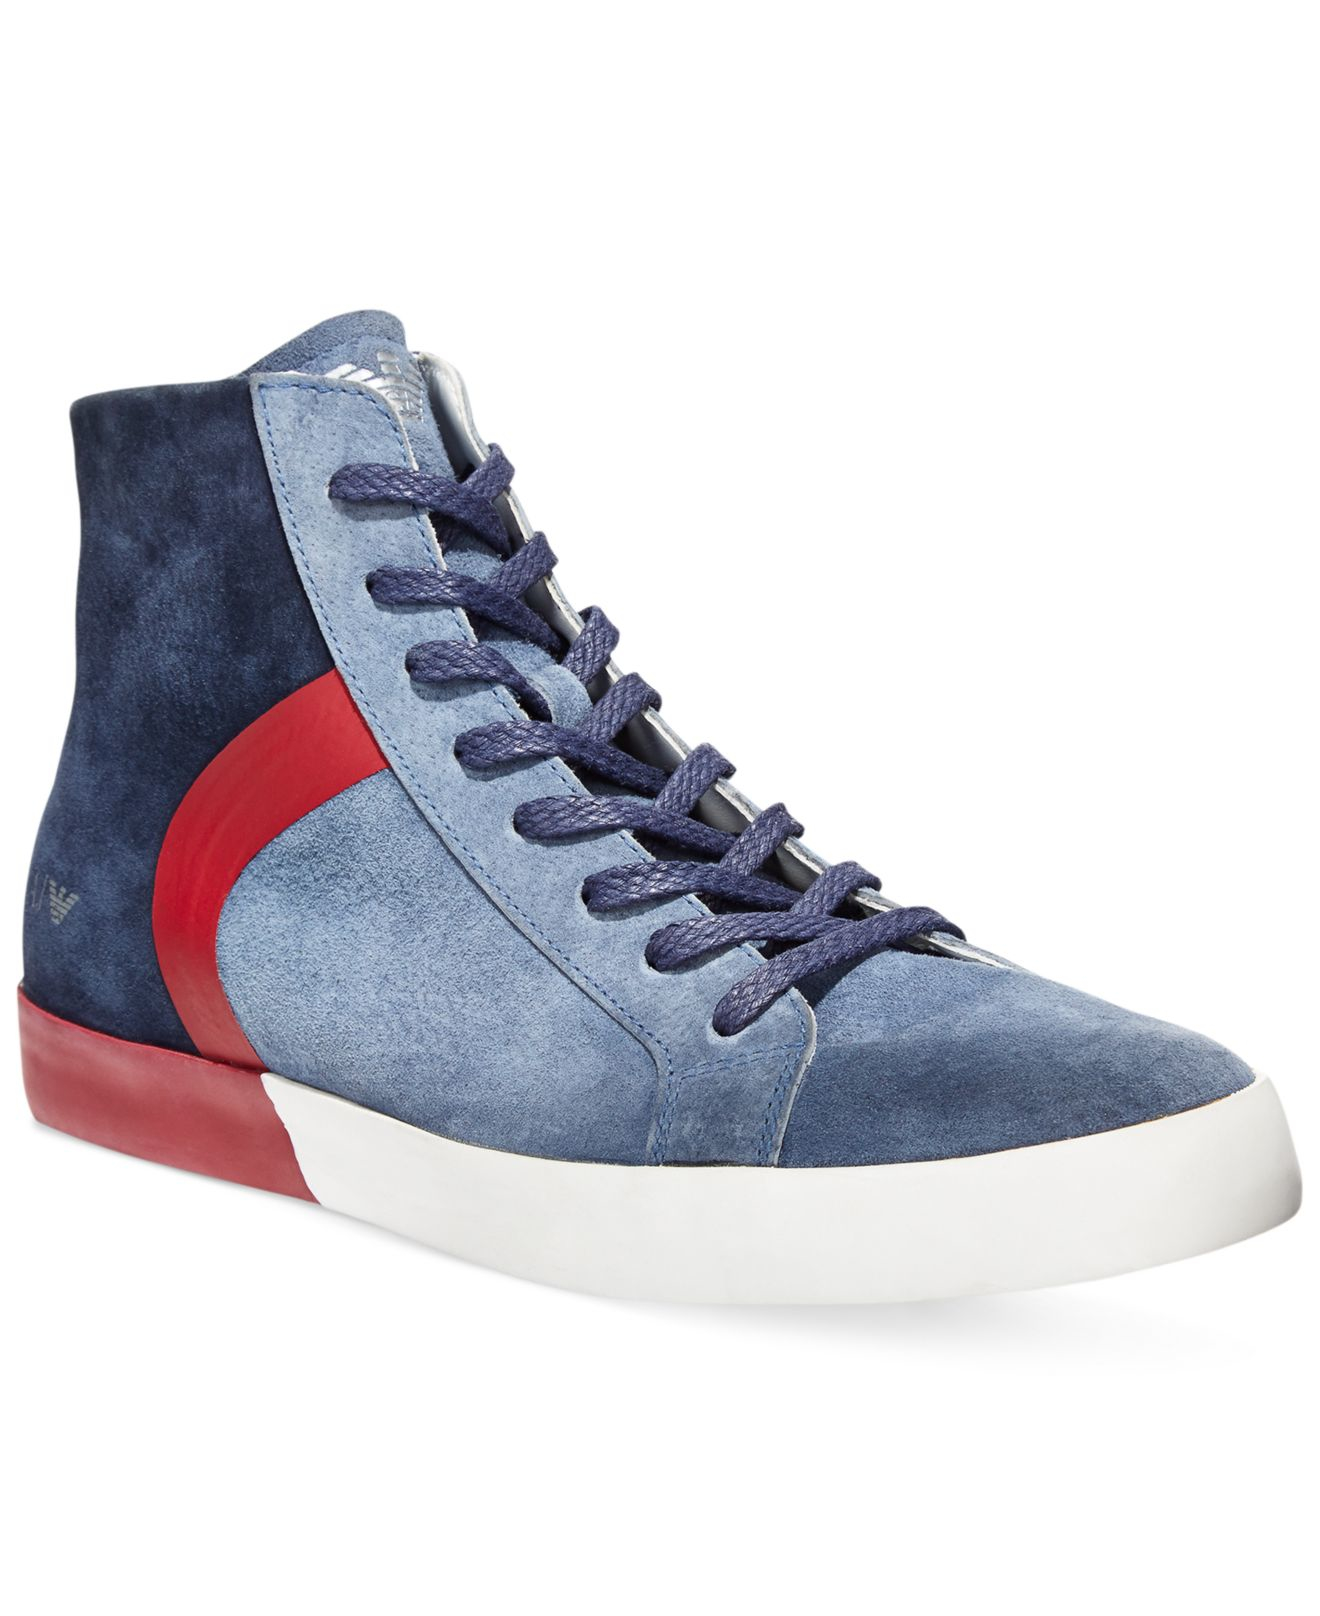 Lyst - Armani Jeans Dusty Suede Hi Top Sneakers in Blue for Men 4d613f4862e3